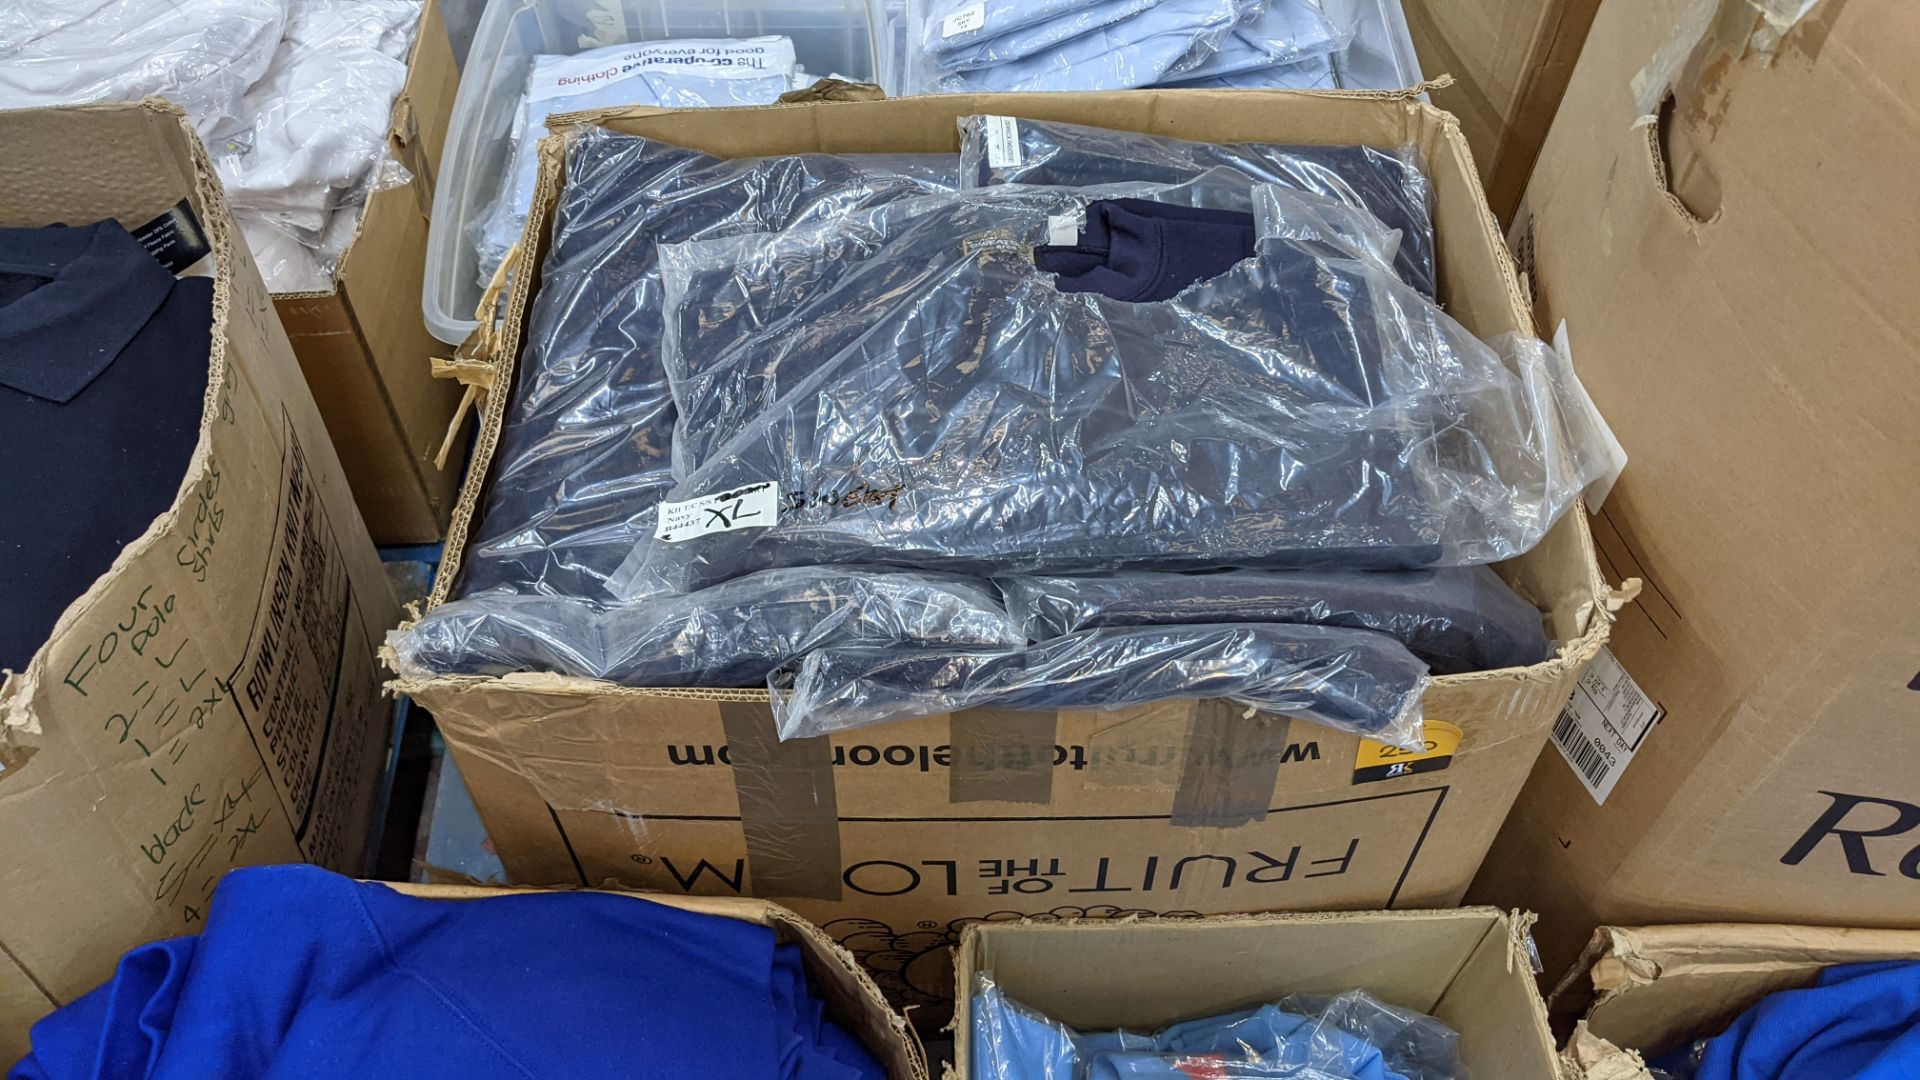 Approx 27 off blue sweatshirts - 1 large box - Image 2 of 5